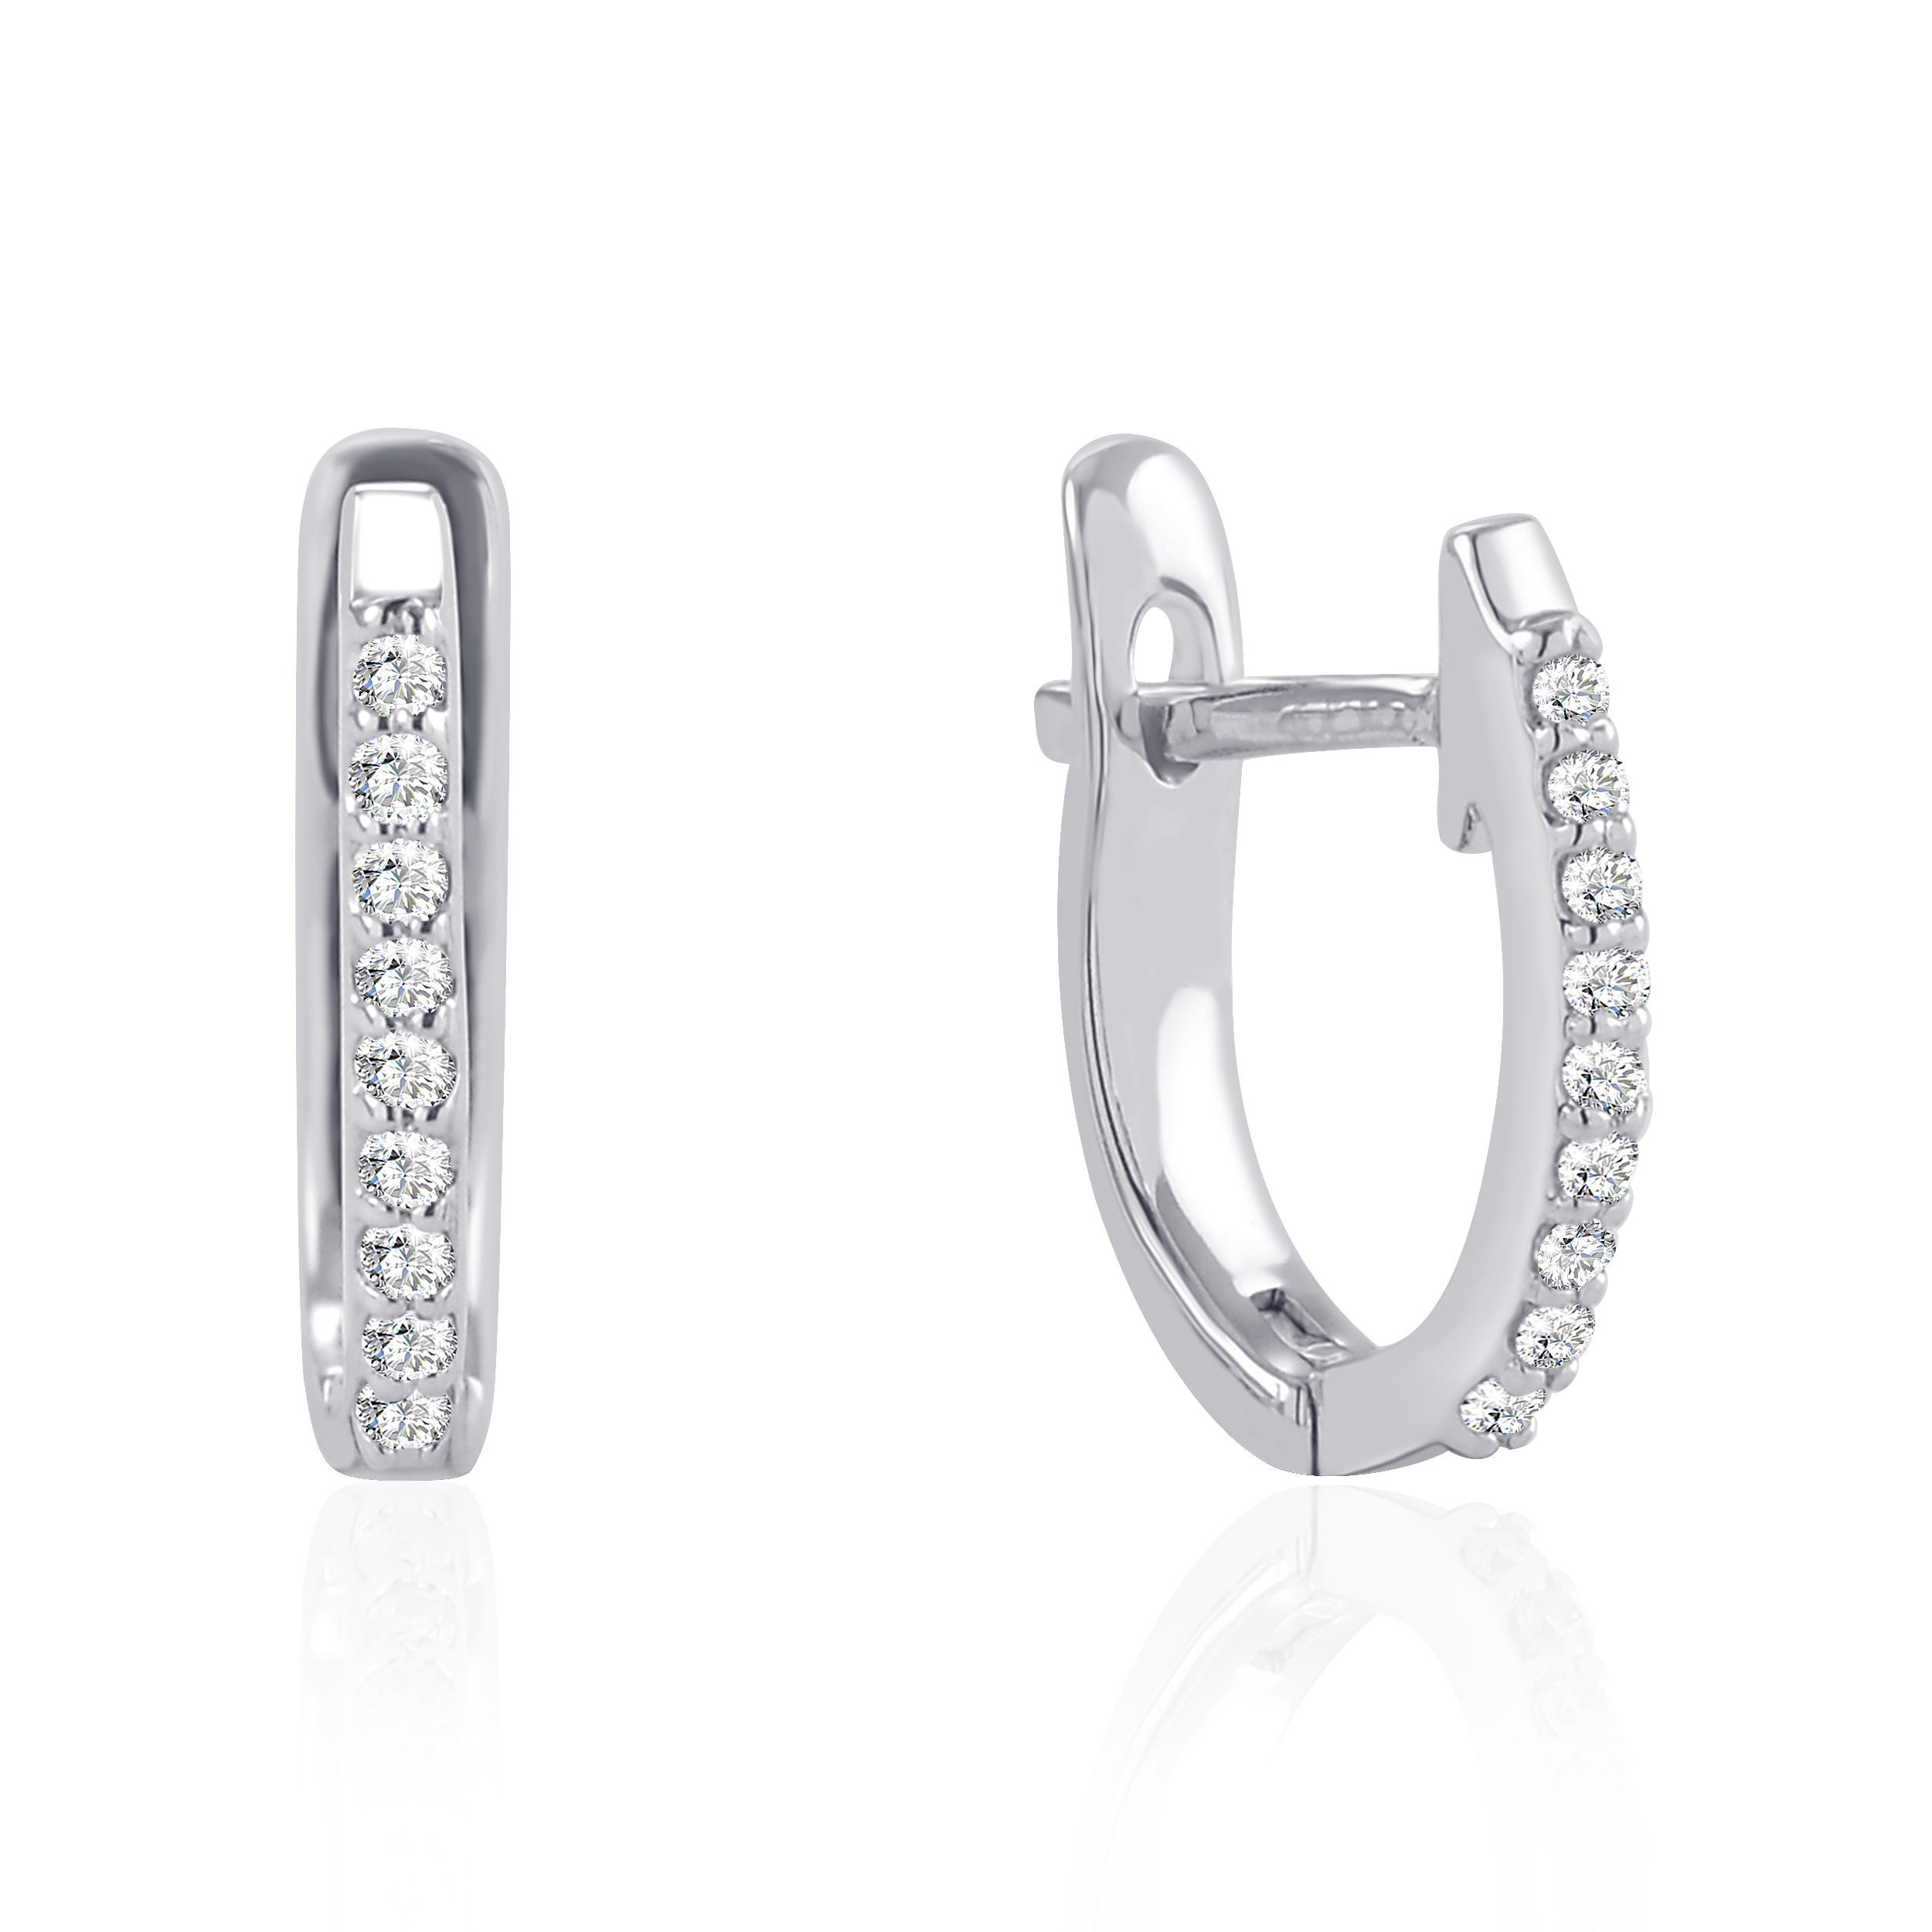 10K Gold Diamond Hoop Earrings Women Diamond Huggie Earrings